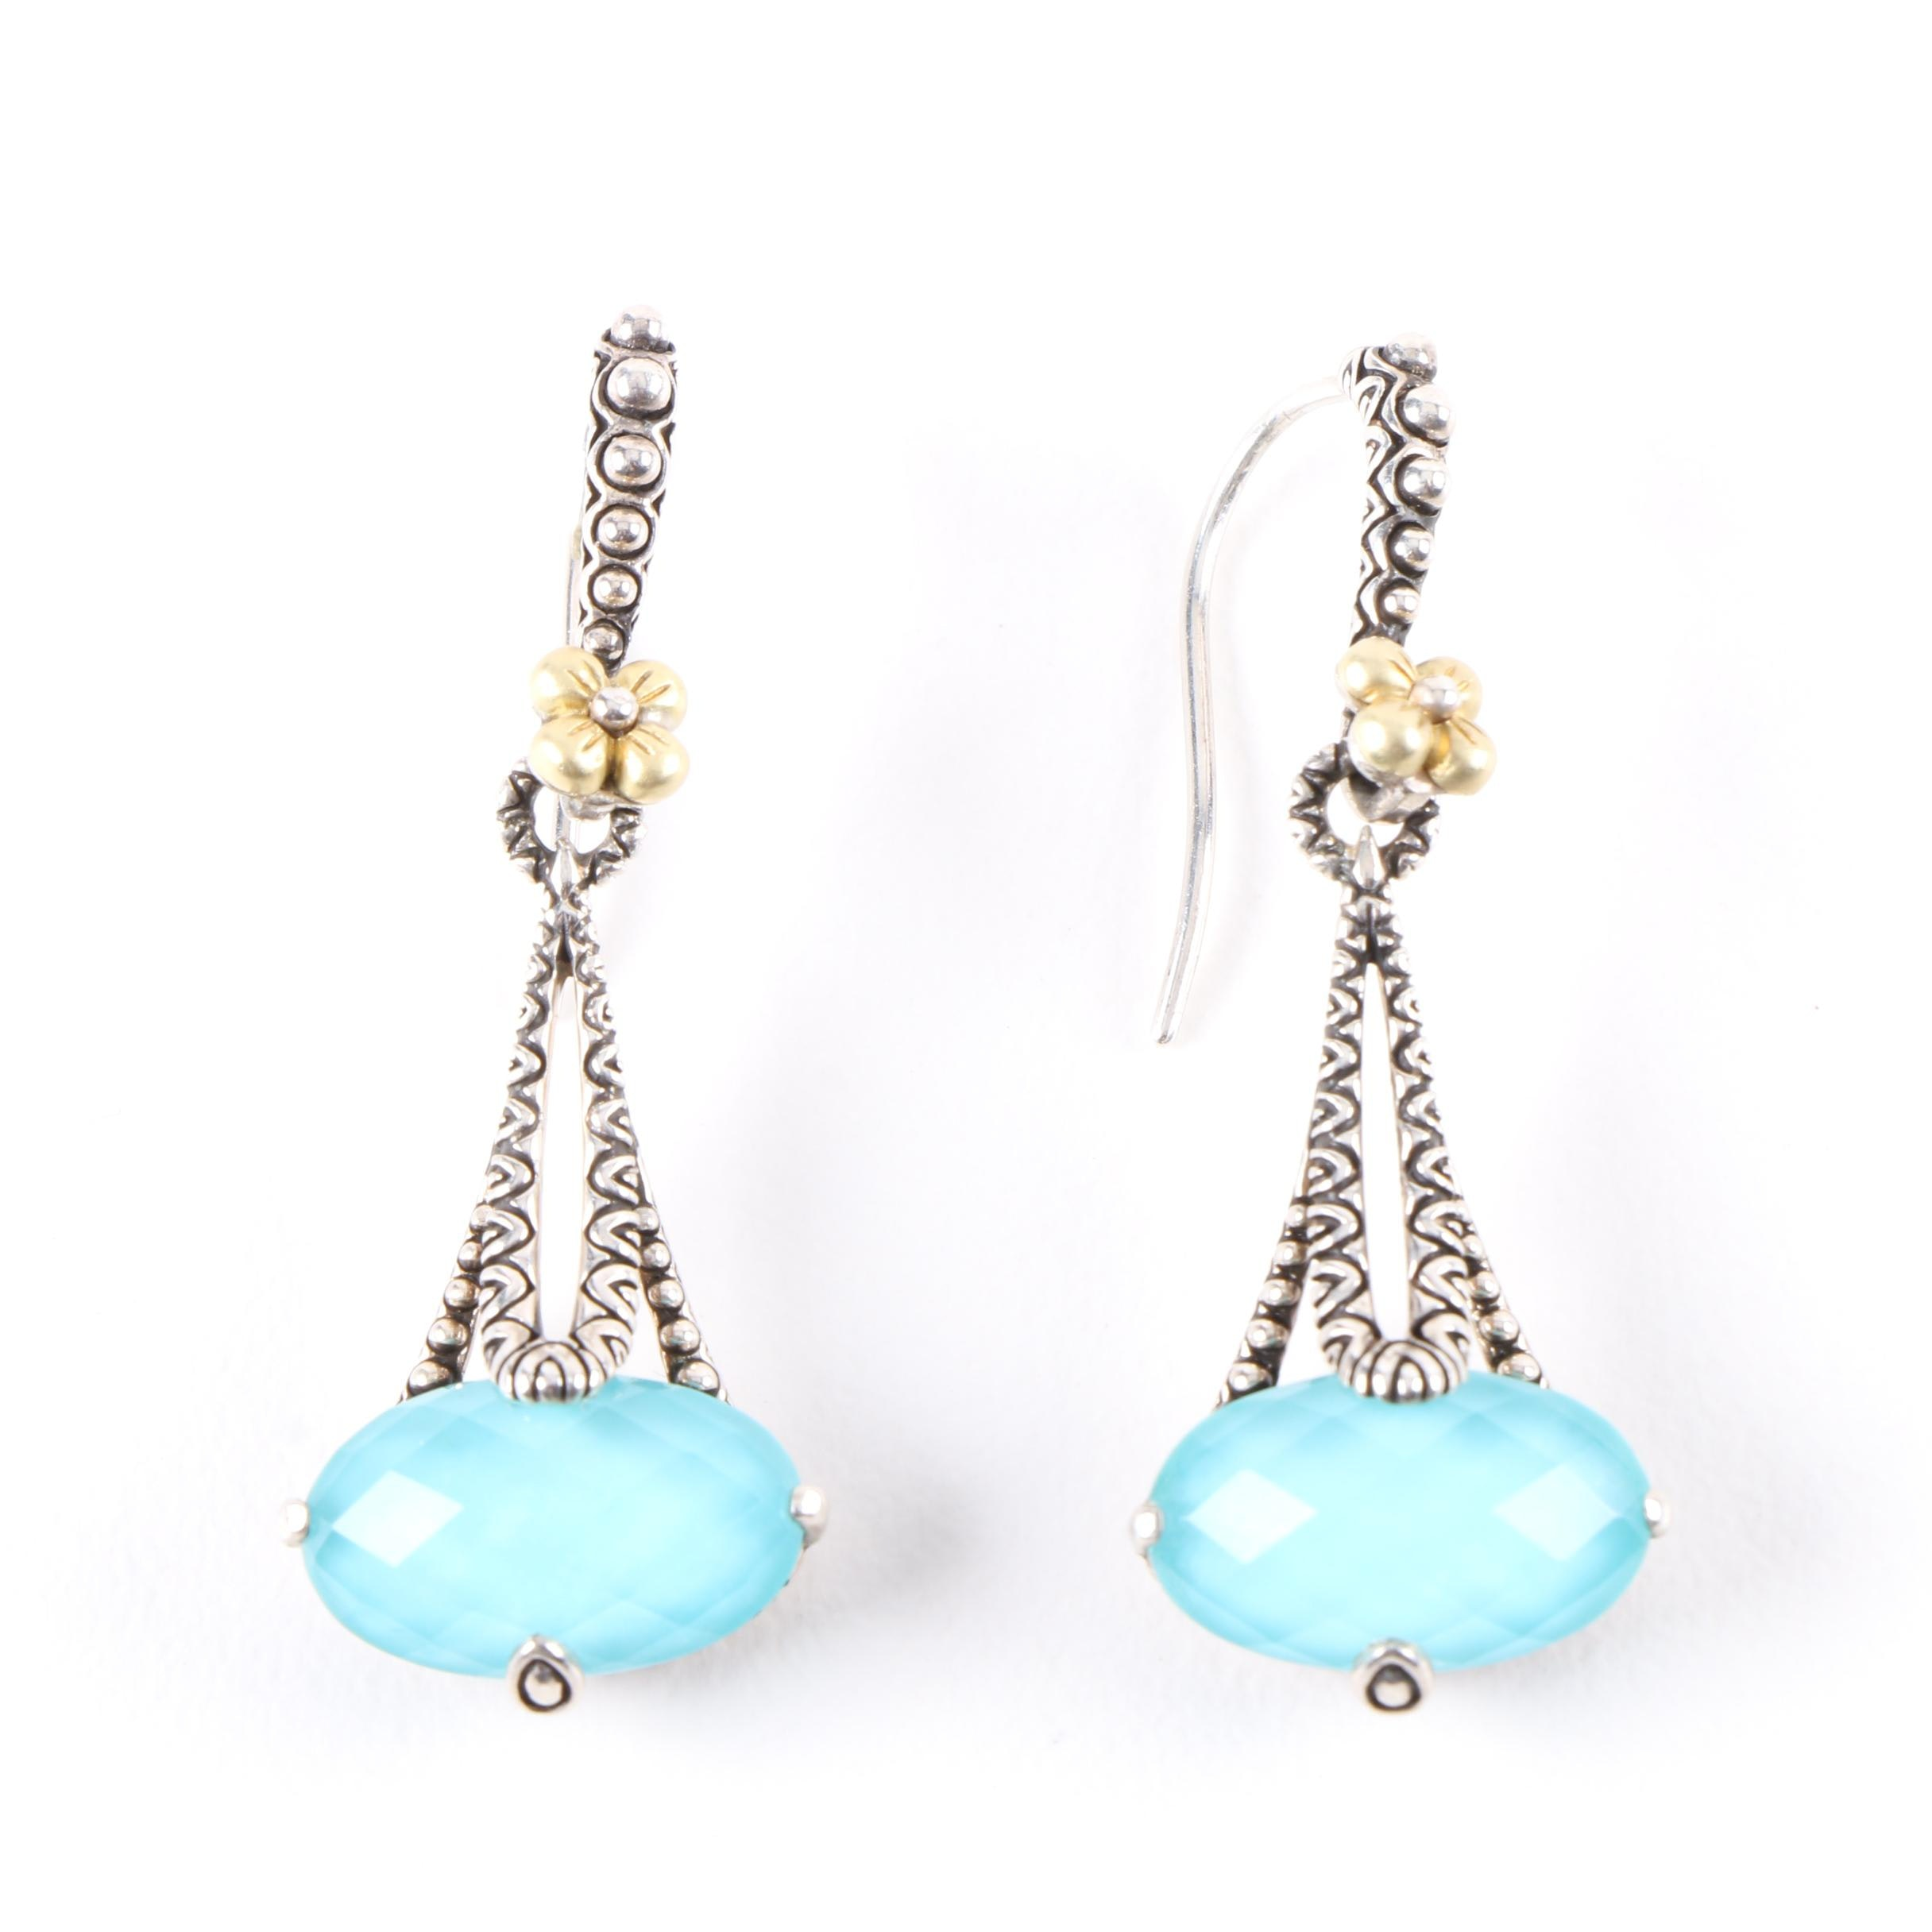 Bizby Sterling Silver and 18K Yellow Gold Turquoise and Quartz Hook Earrings